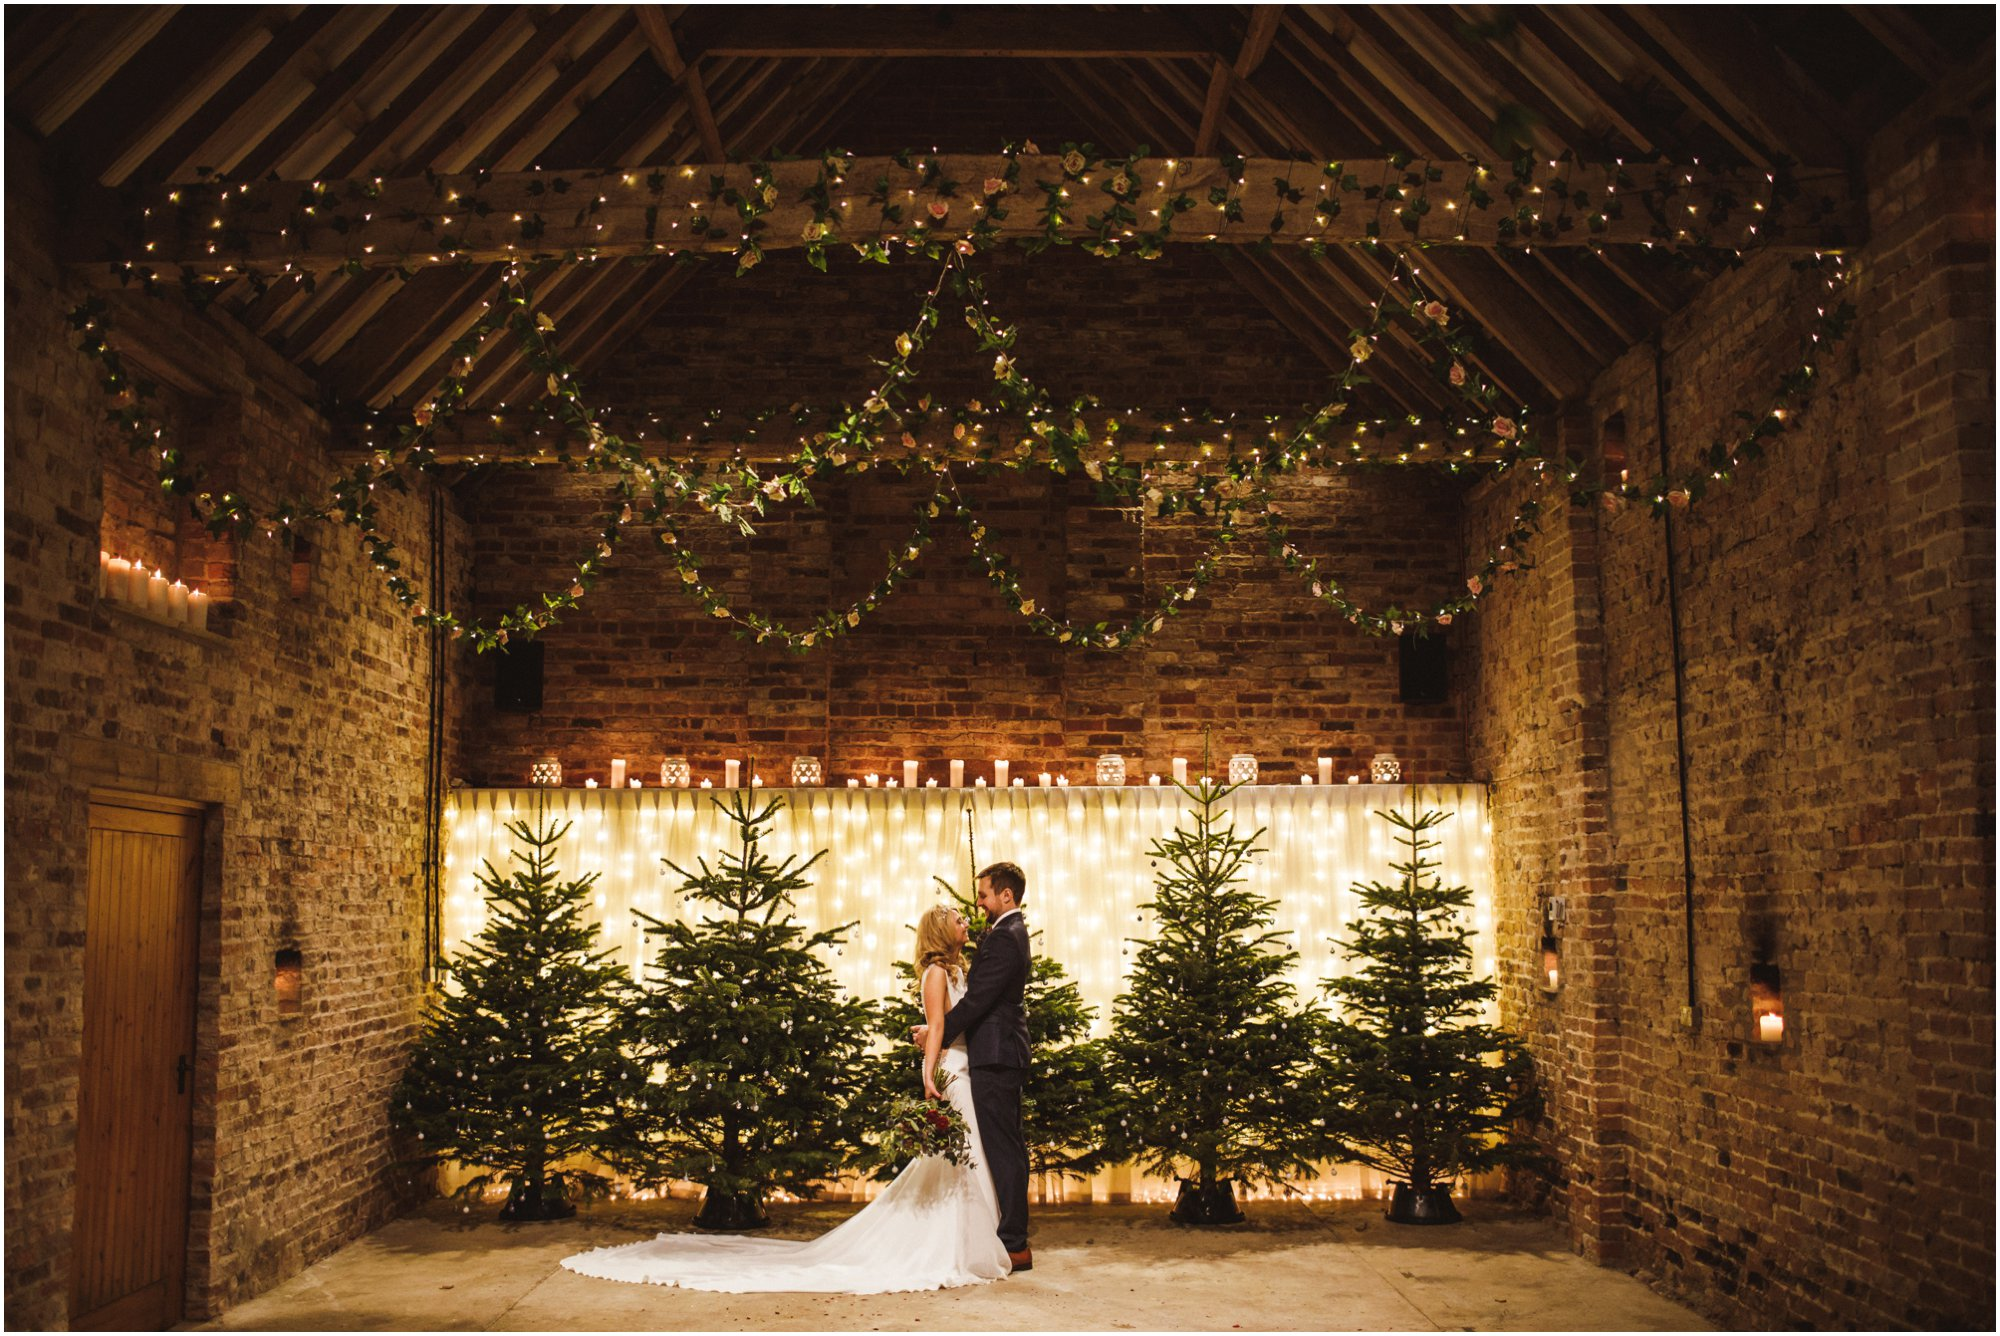 Barmbyfields Barn Wedding York_0068.jpg